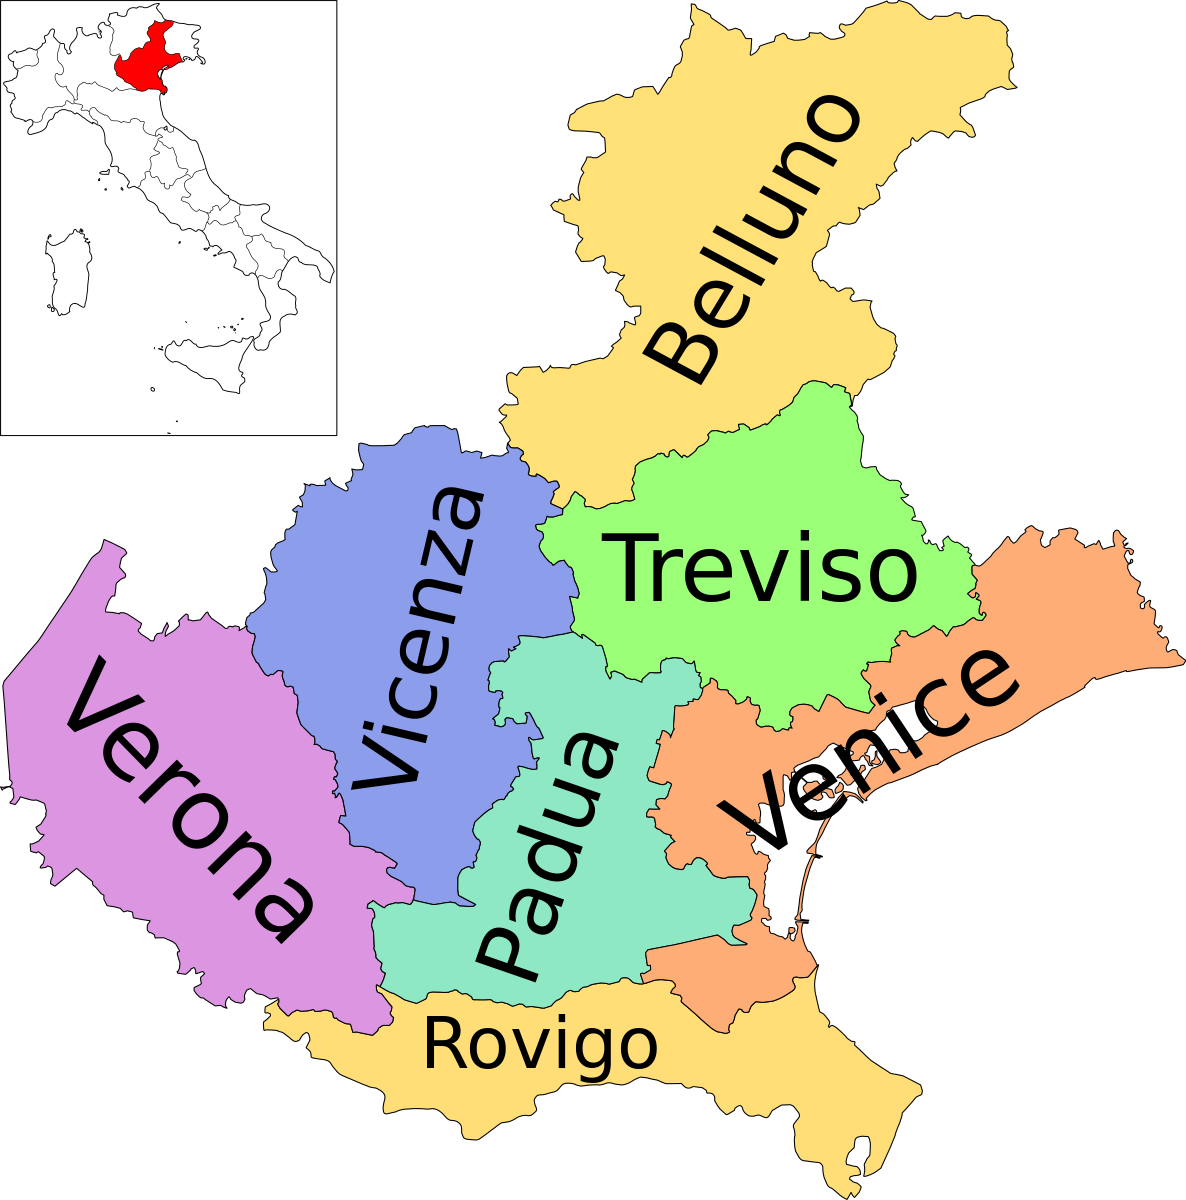 File:Map of region of Veneto, Italy, with provinces-en.svg ...